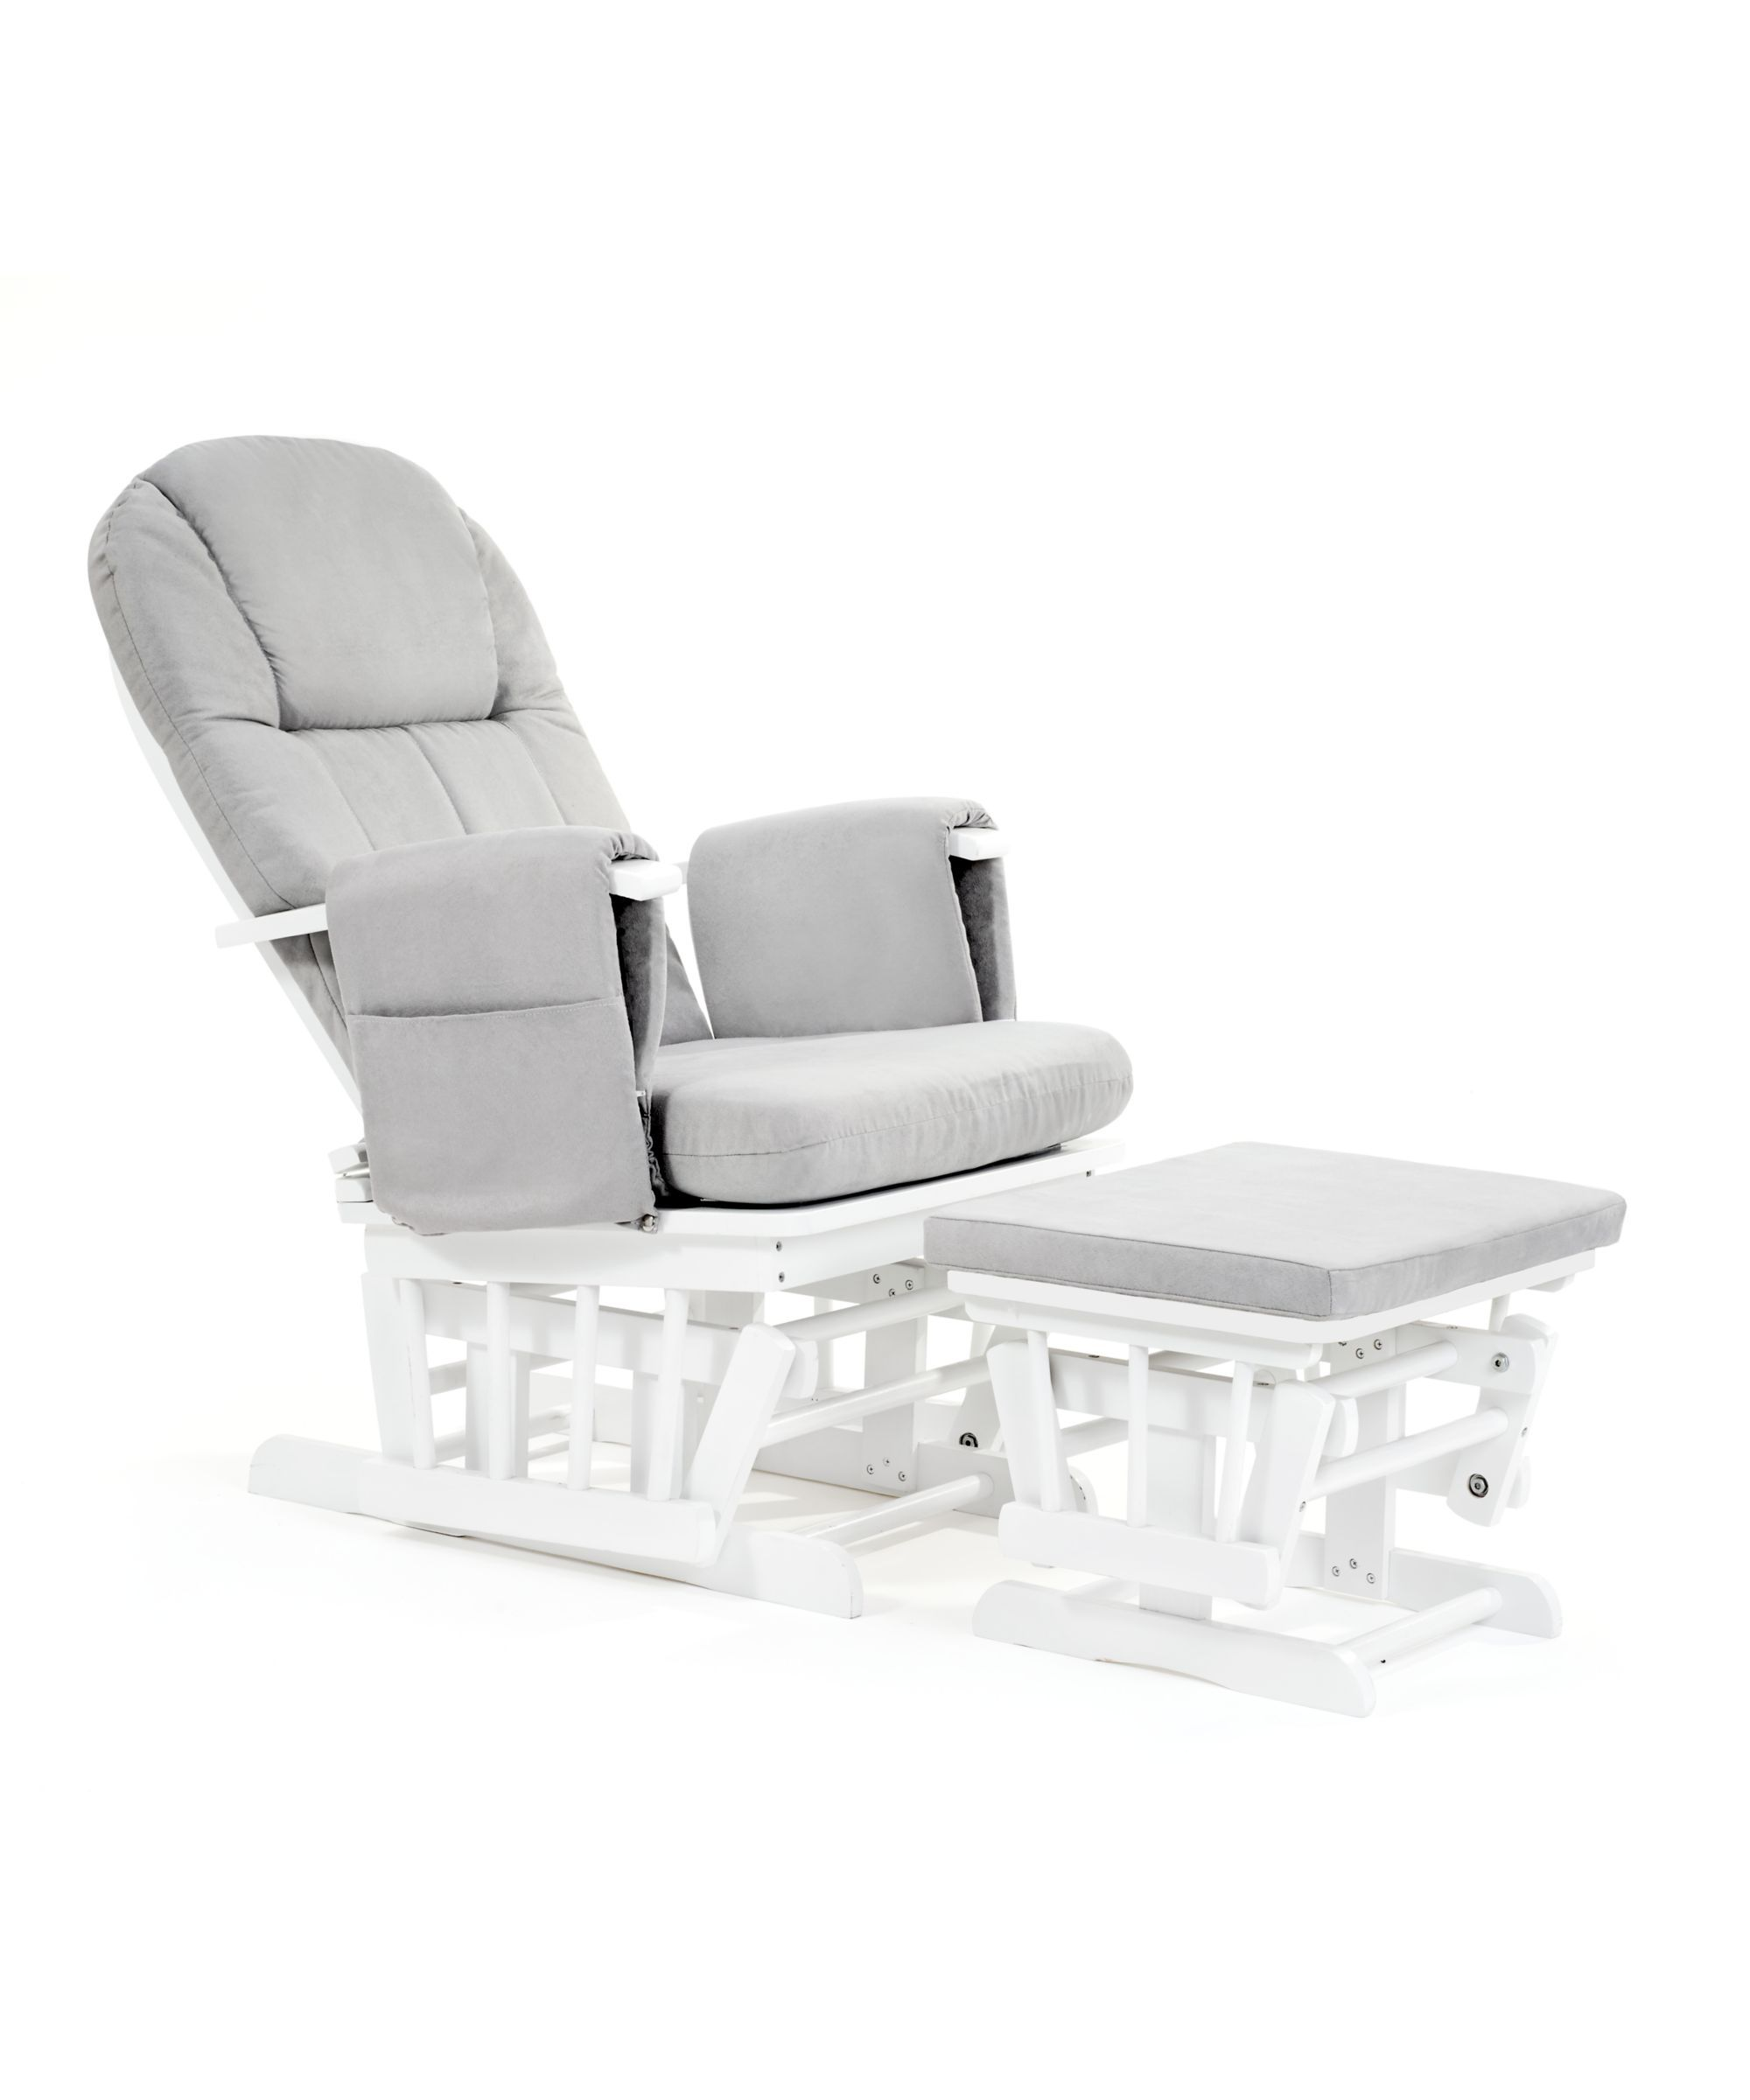 Grey Nursing Chair Mothercare Reclining Glider Chair White With Grey Cushion Kids